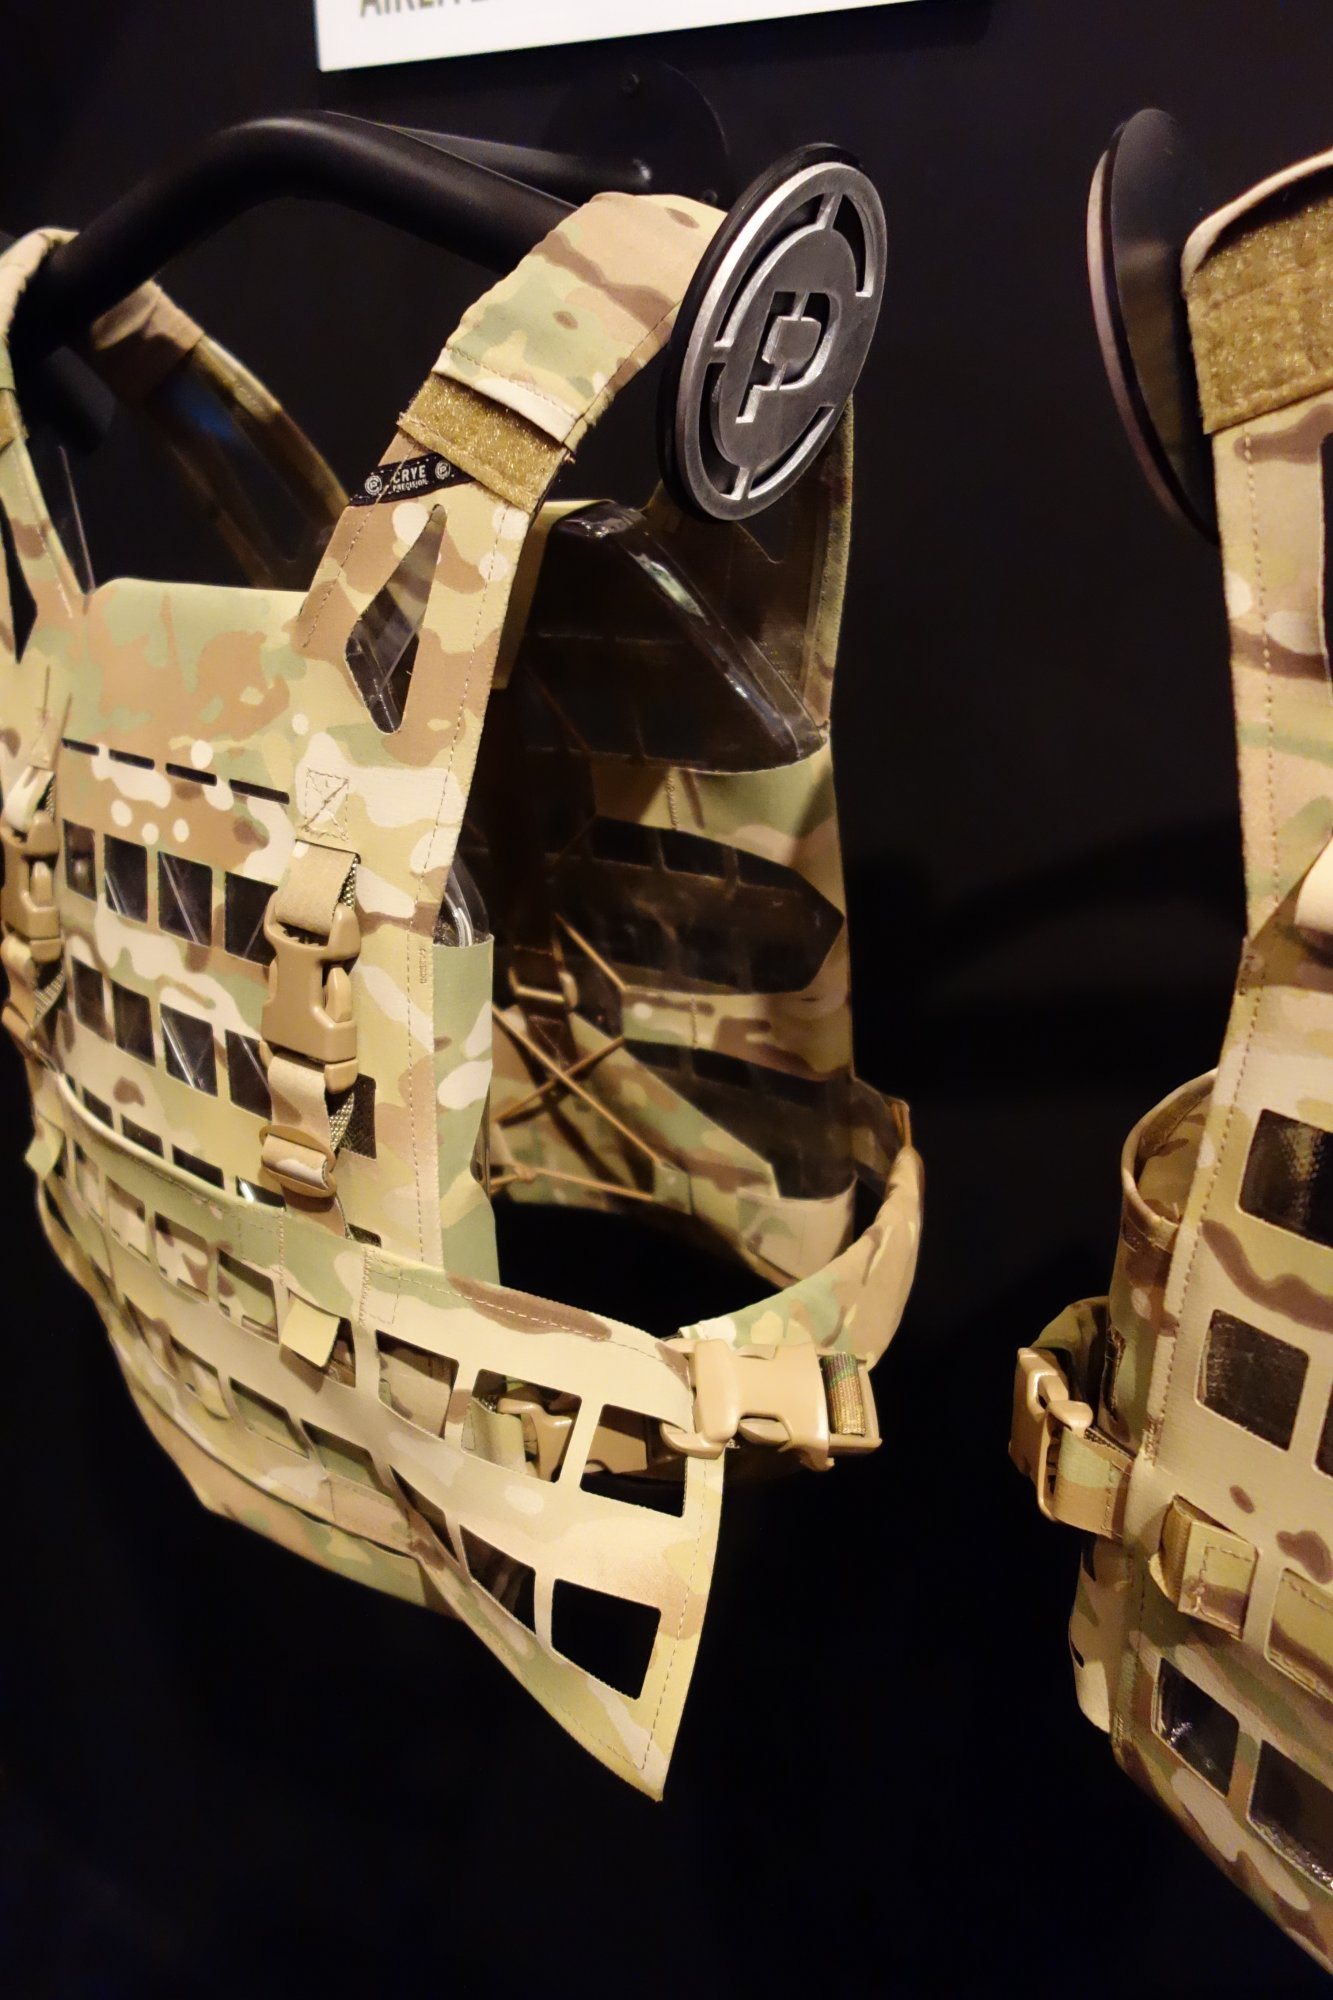 Crye Precision AirLite EK01 Ultra Lightweight Low Profile Low Visibility Tactical Armor Plate Carrier with Cutaway MOLLE System Hypalon with Chest Rig at SHOT Show 2013 David Crane DefenseReview.com DR 3 Crye Precision AirLite EK02/EK04 (and EK01/EK03) Ultra Minimalist Cutaway MOLLE Plate Carrier/Tactical Vest (Body Armor) and Chest Rig for Direct Action and other Short Duration Military Special Operations Forces (SOF) Missions